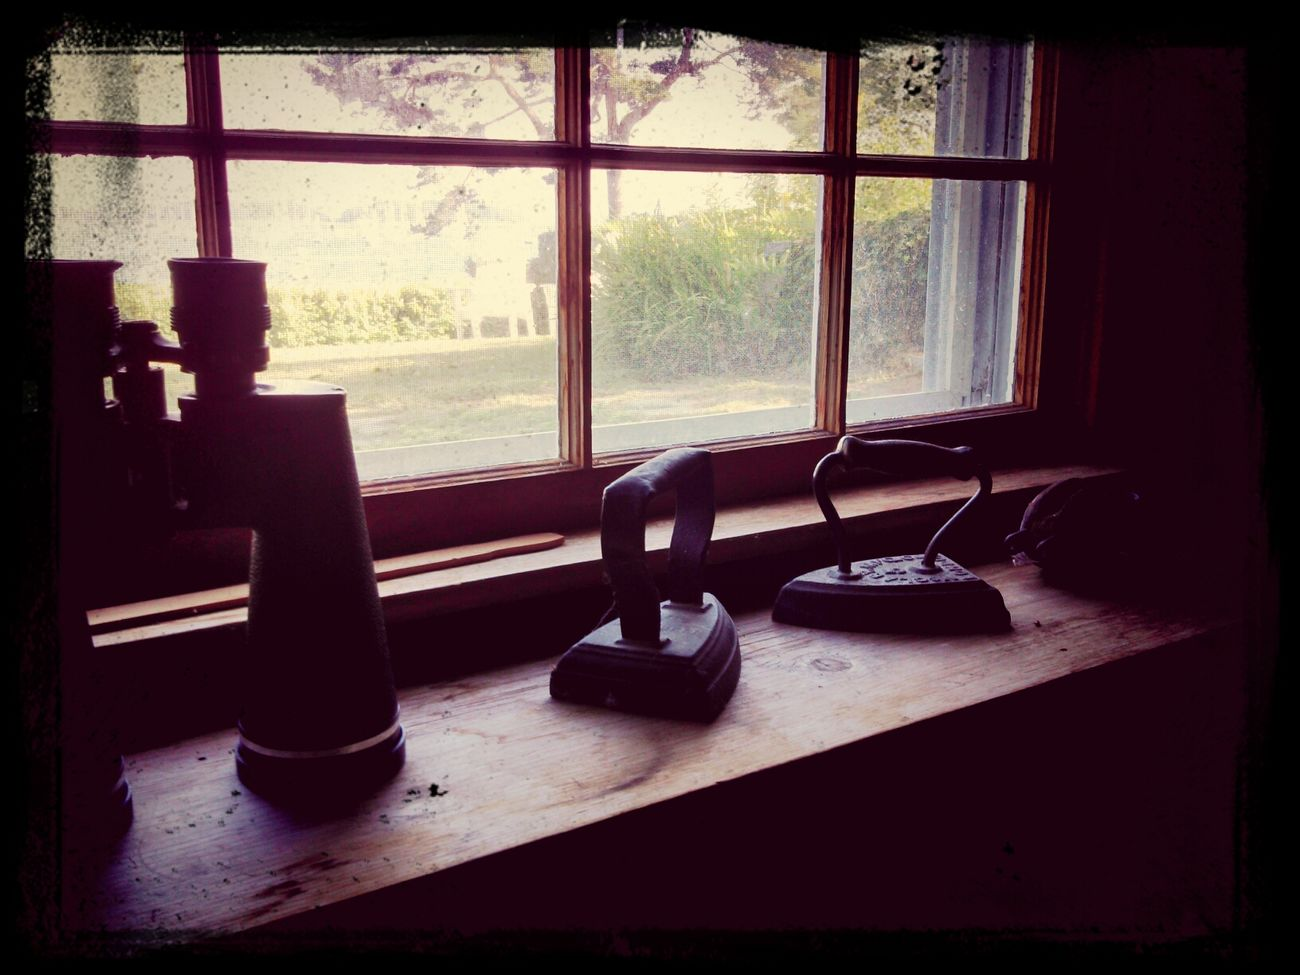 antique irons with a view